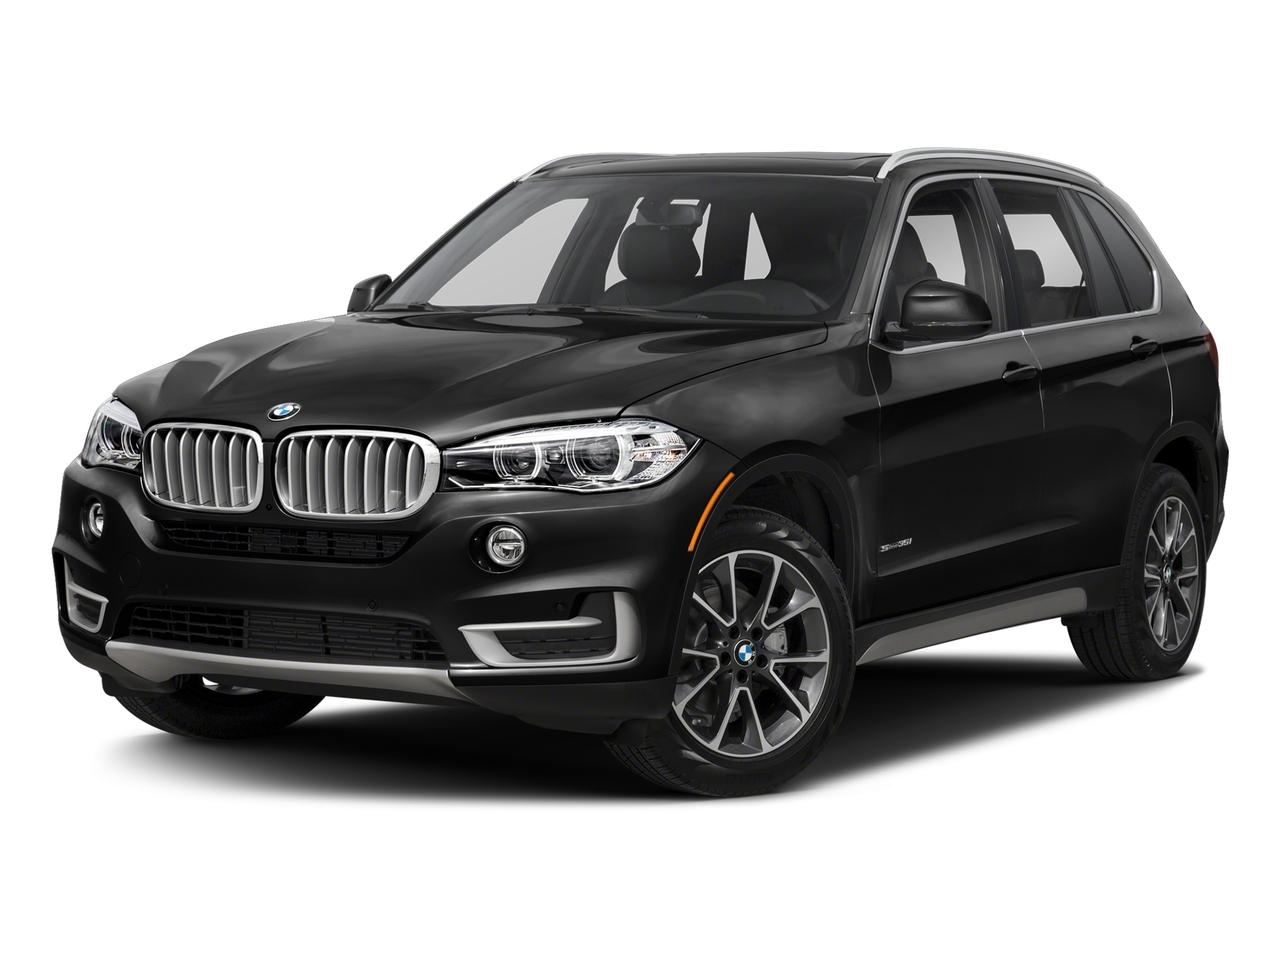 2018 BMW X5 xDrive35i Vehicle Photo in Muncy, PA 17756